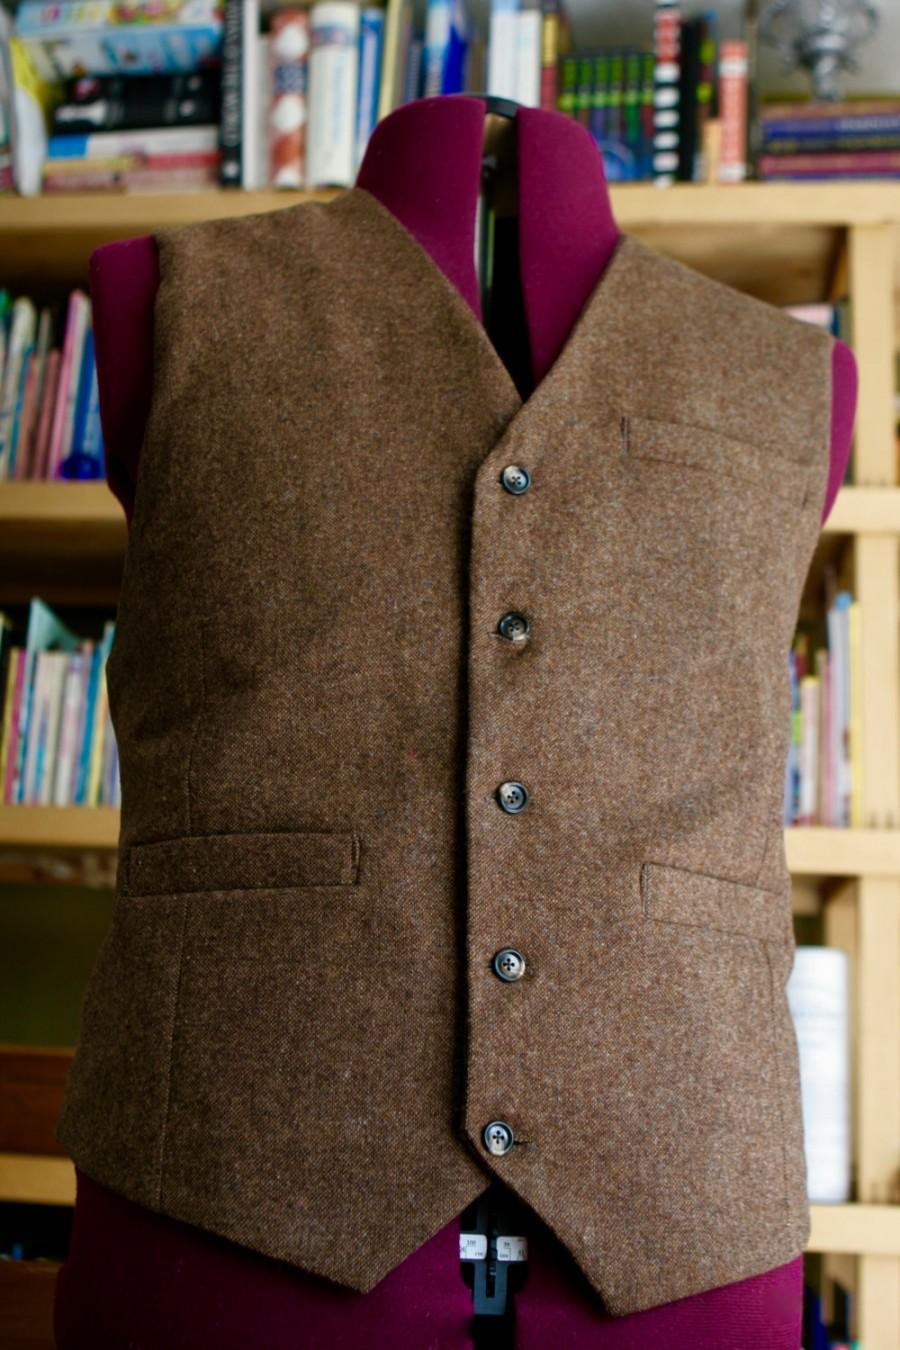 Düğün - Non Pleated  Back Adult brown tweed wool Vest Made to your measurements Groom / groomsmen